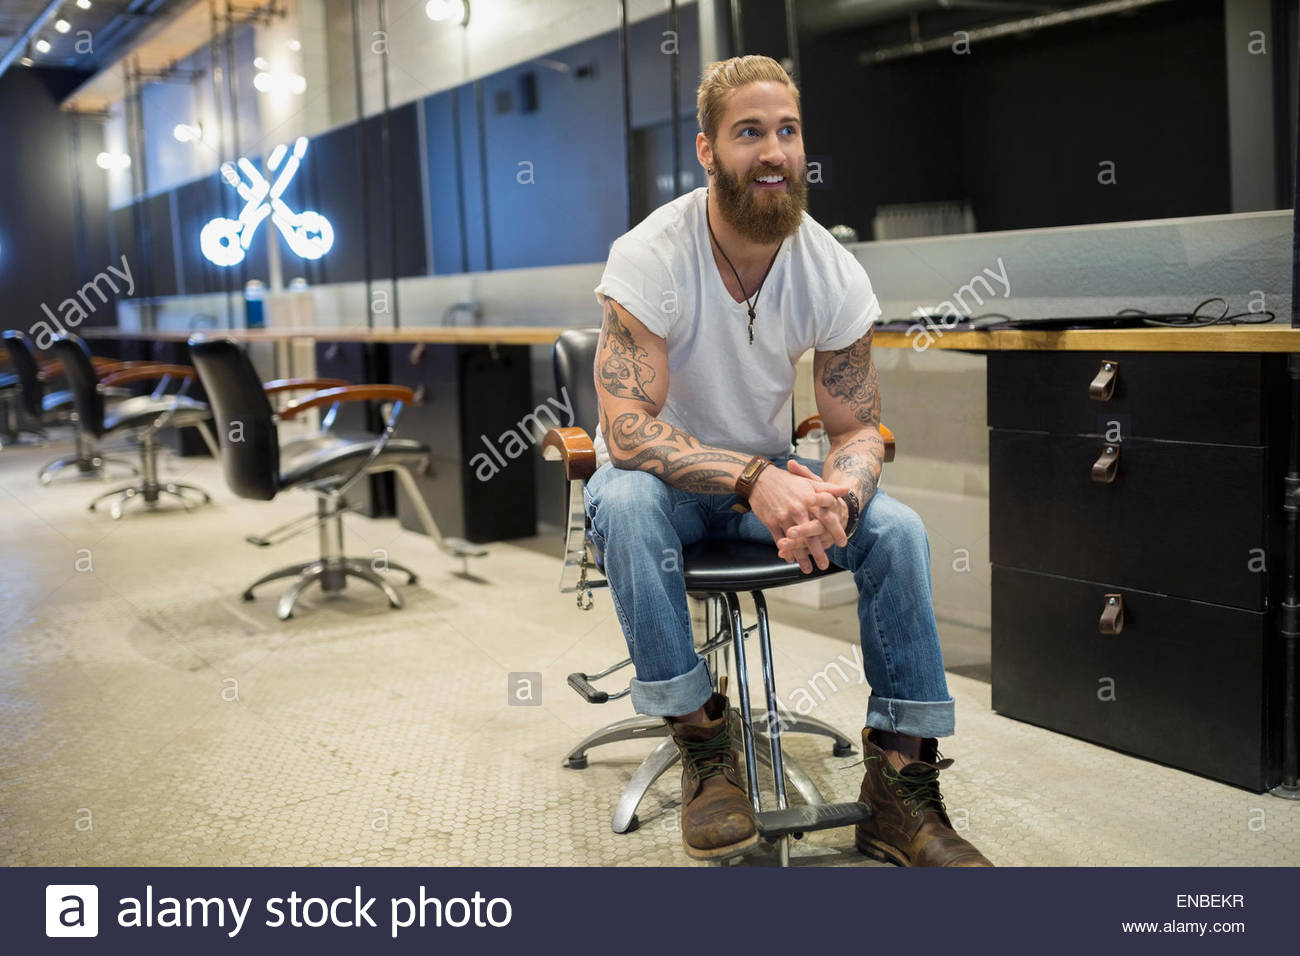 Hipster hairstylist sitting in hair salon - Stock Image